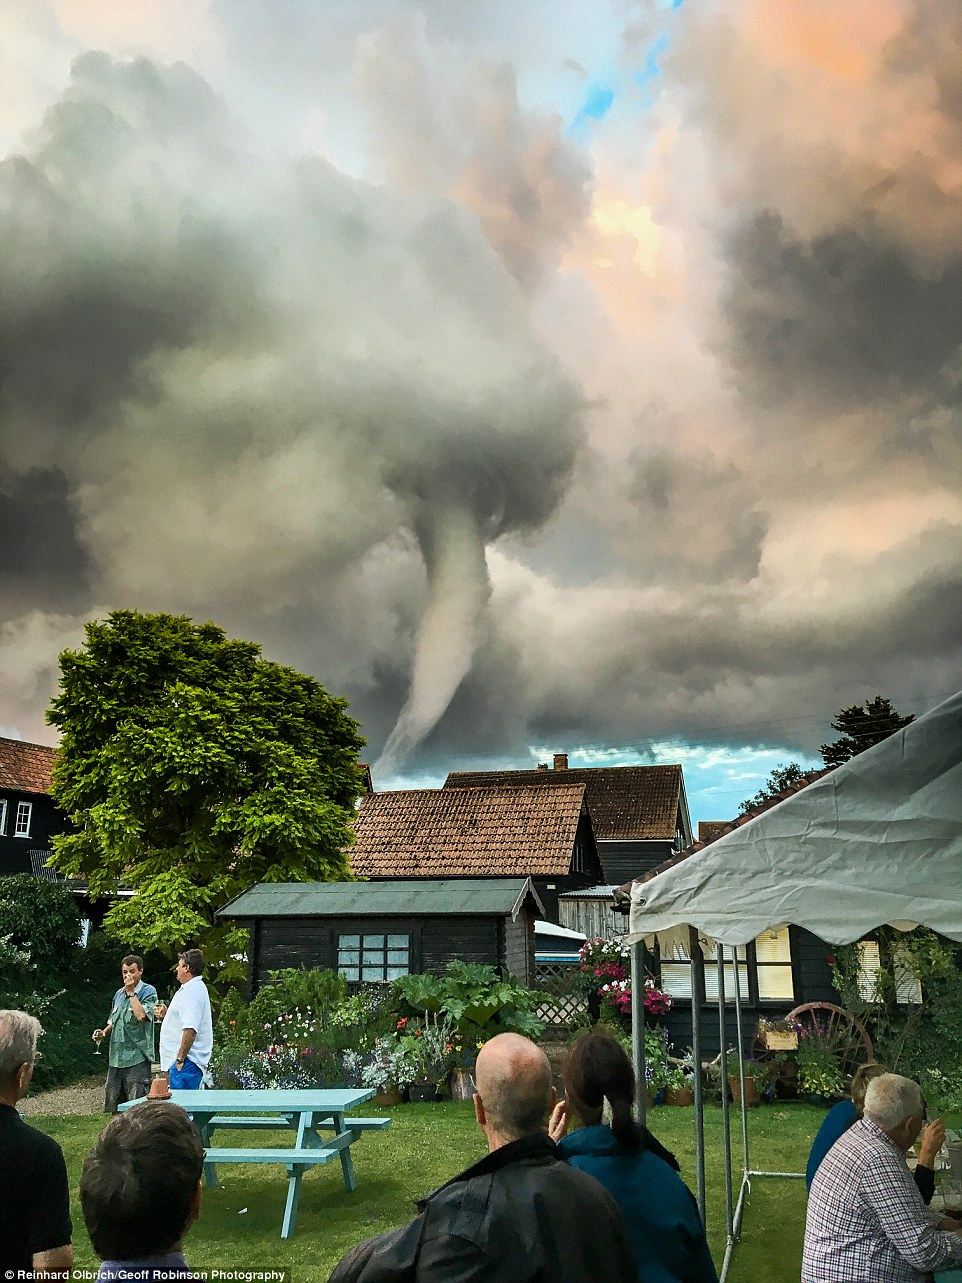 https://i0.wp.com/i.dailymail.co.uk/i/pix/2016/07/31/14/36BF41A400000578-0-Reinhard_Olbrich_took_this_remarkable_picture_of_the_twister_fro-m-62_1469973560872.jpg